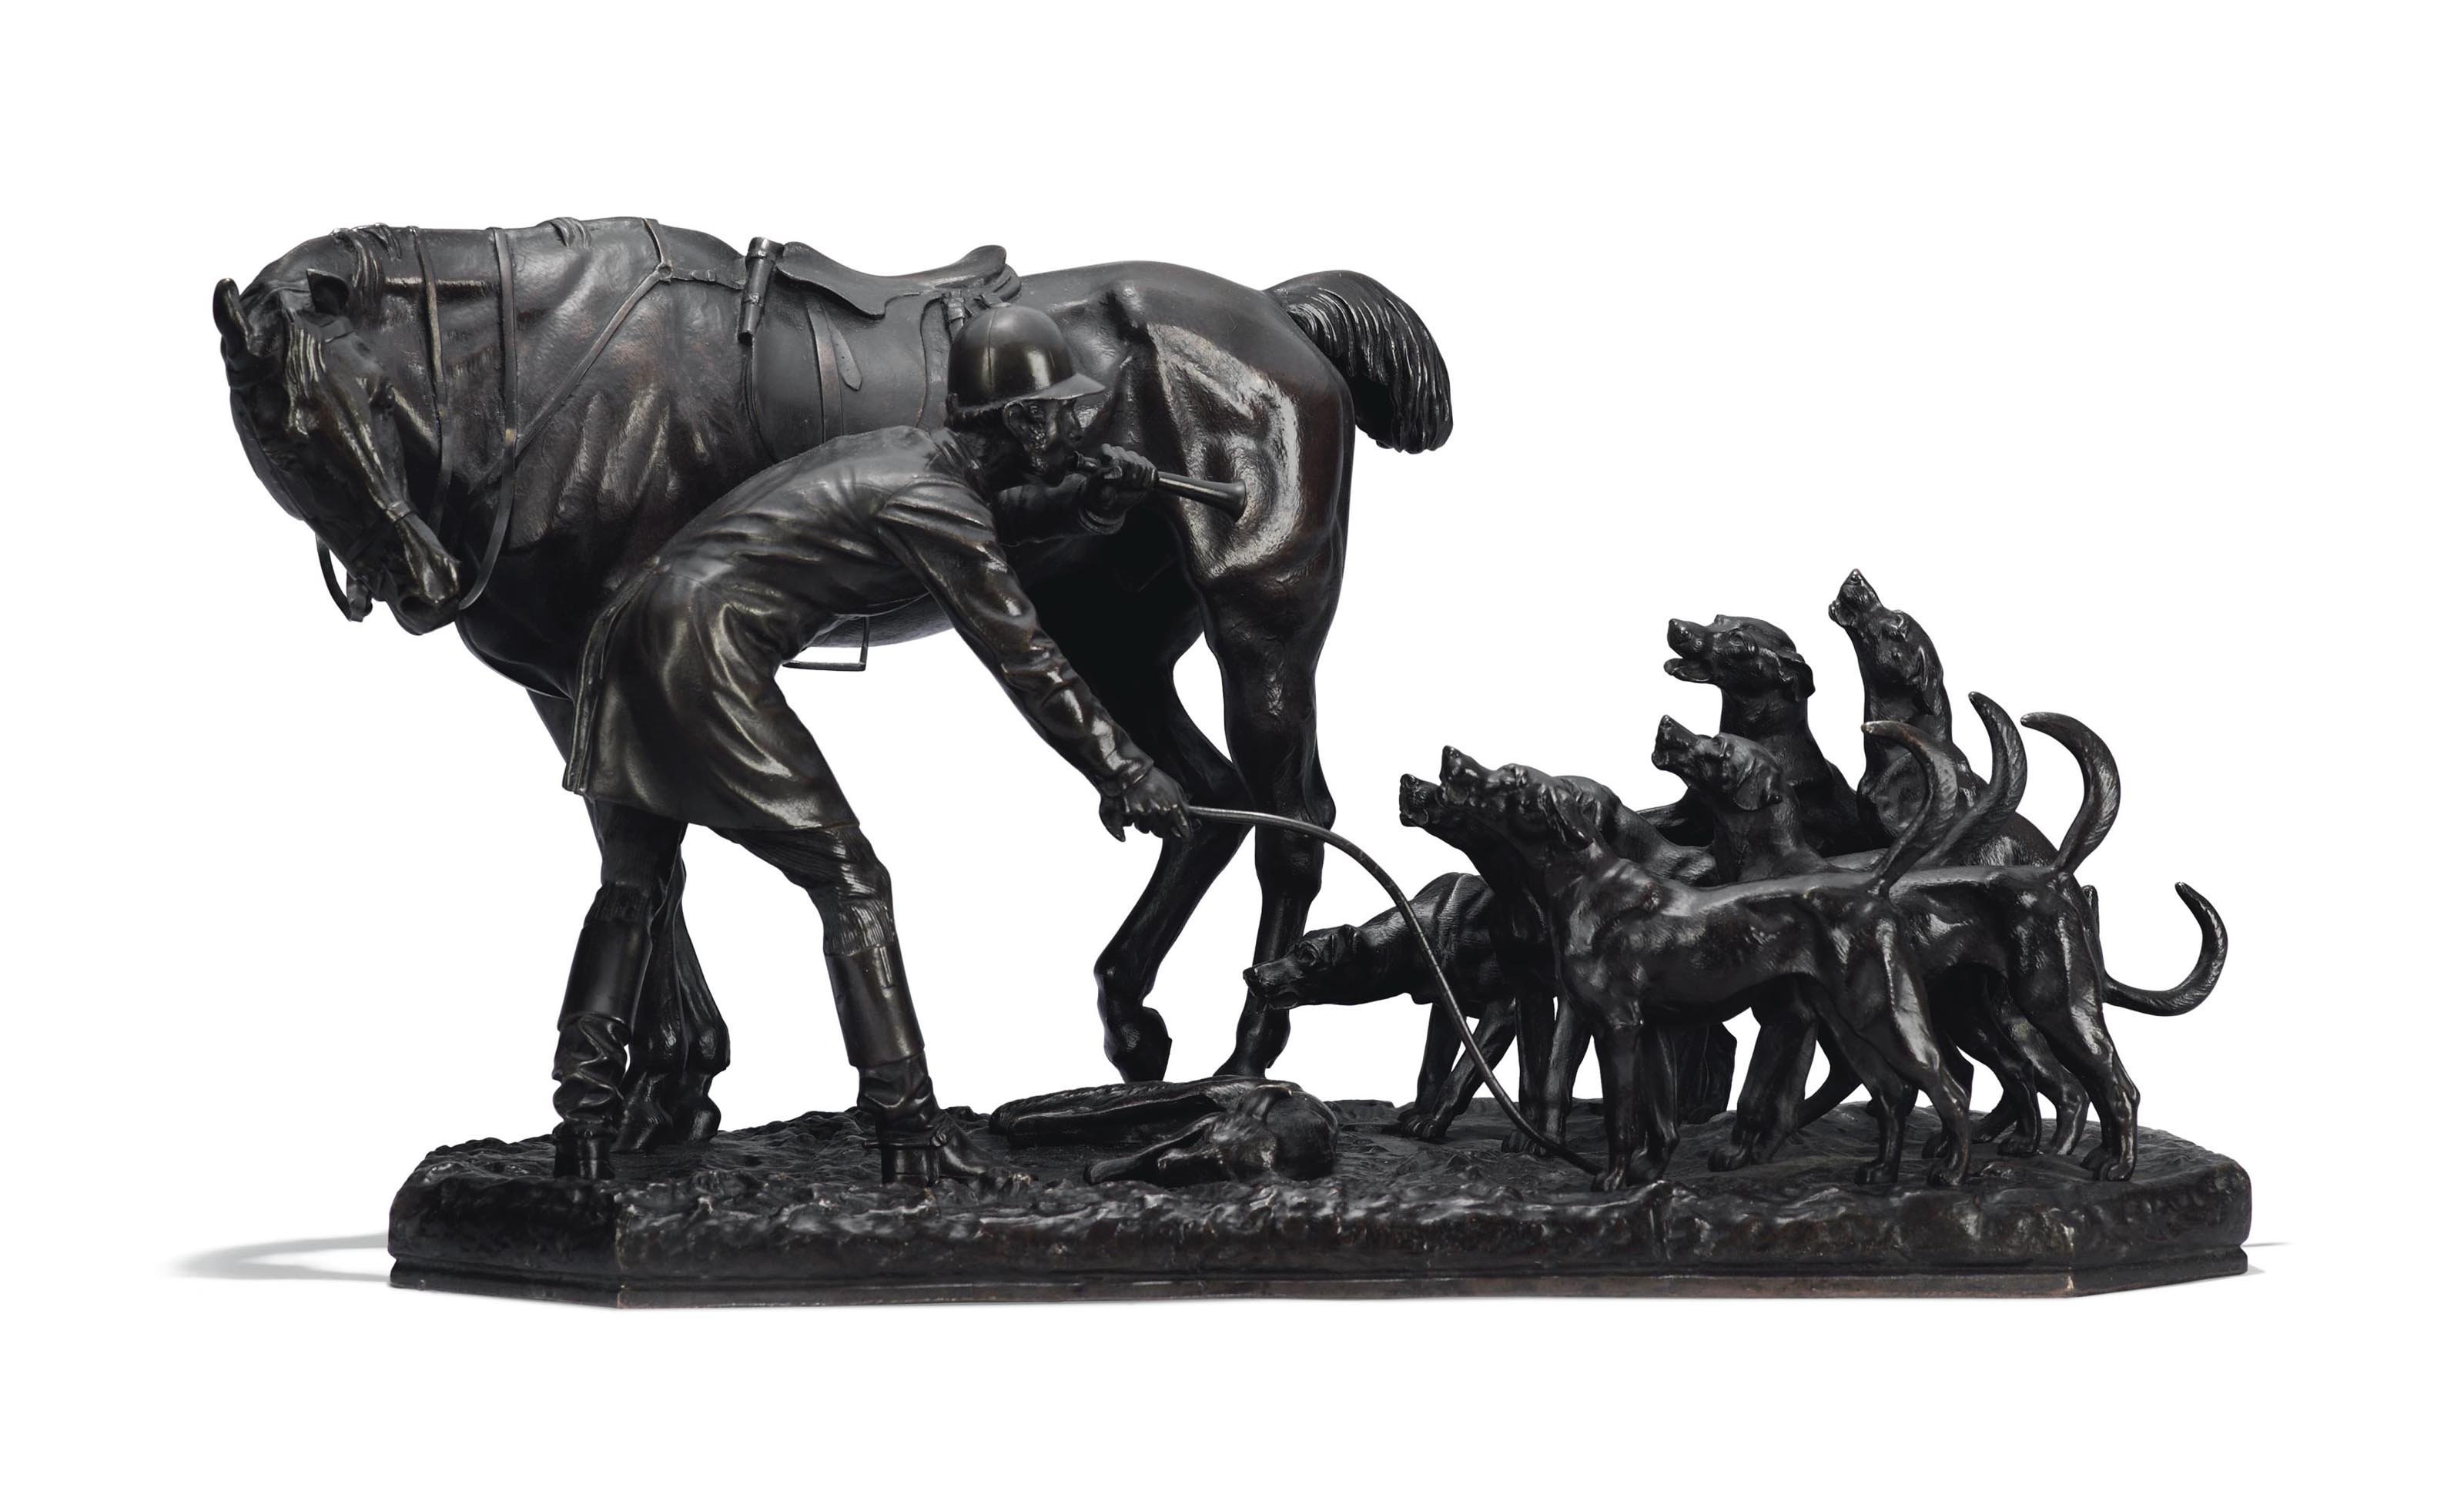 AN ANGLO-IRISH BRONZE GROUP OF A HUNTSMAN WITH A HORSE HOUNDS AND A FOX